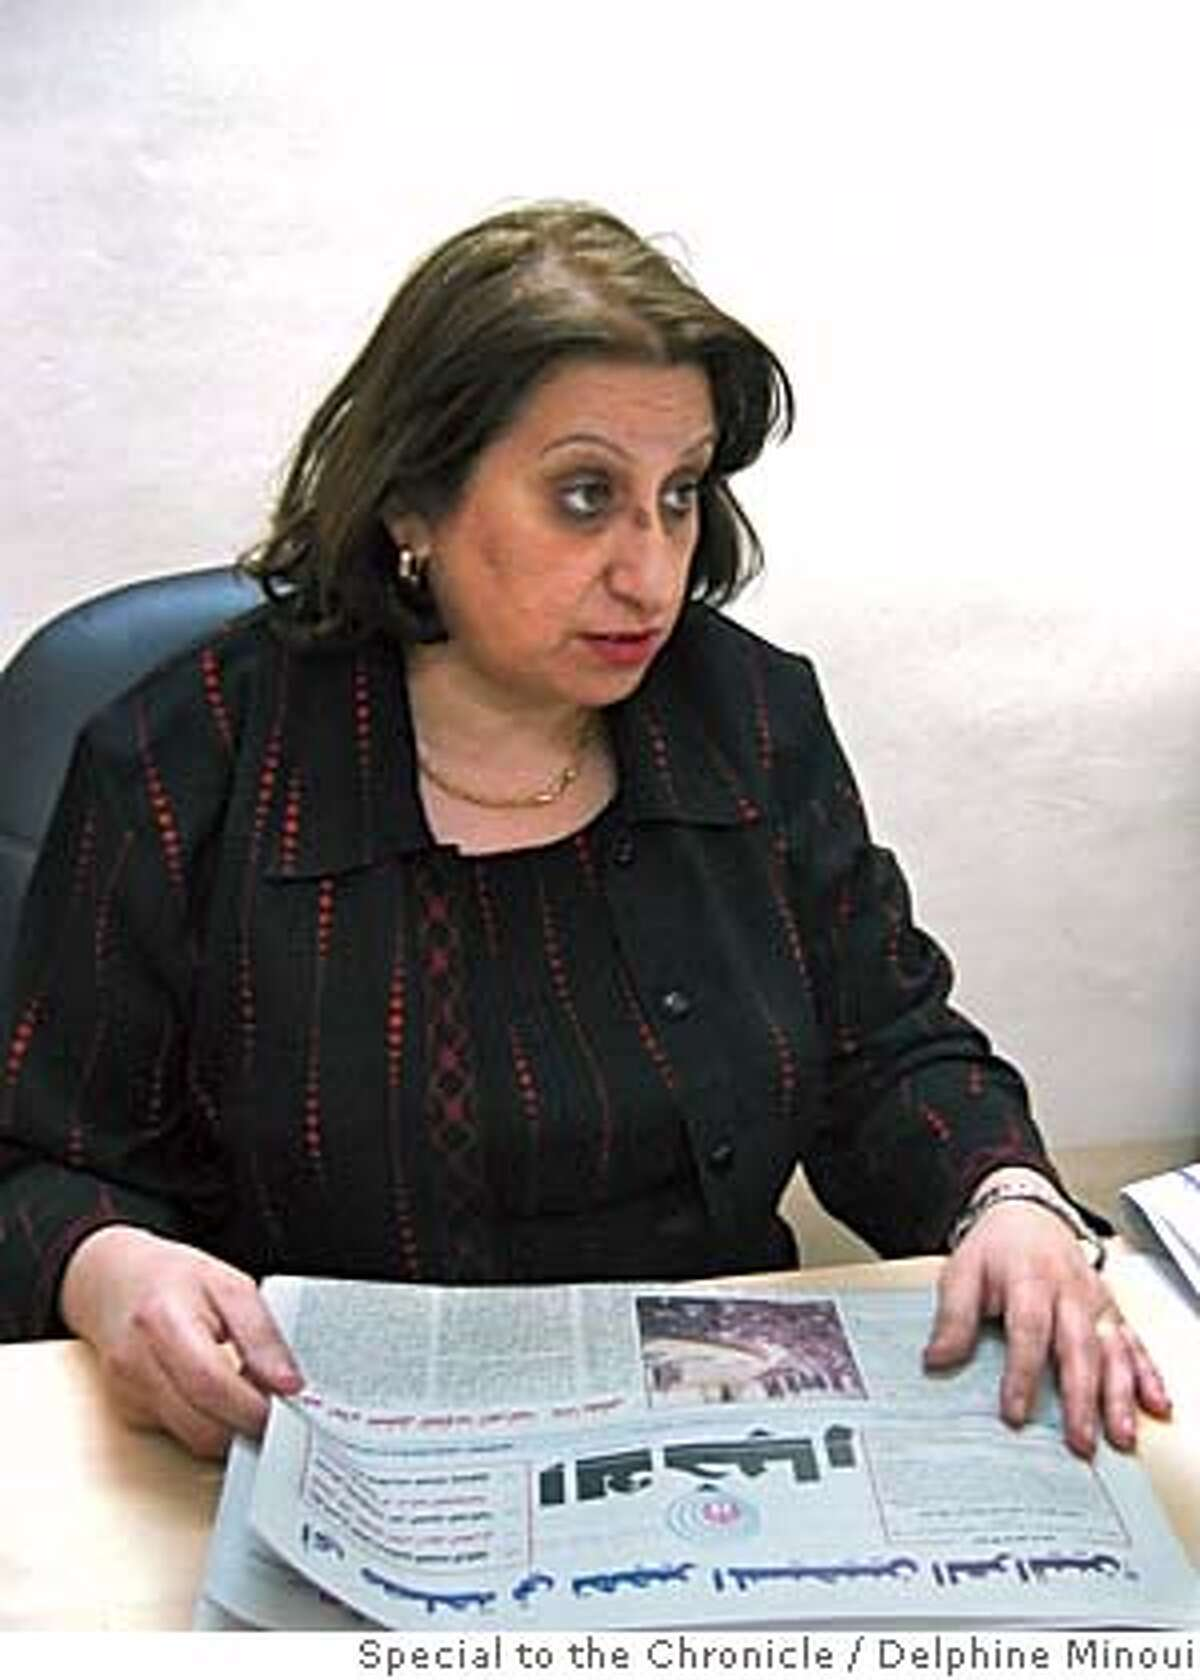 Photo of Juliana Yousef Davoud. Photo by Delphine Minoui/Special to The Chronicle